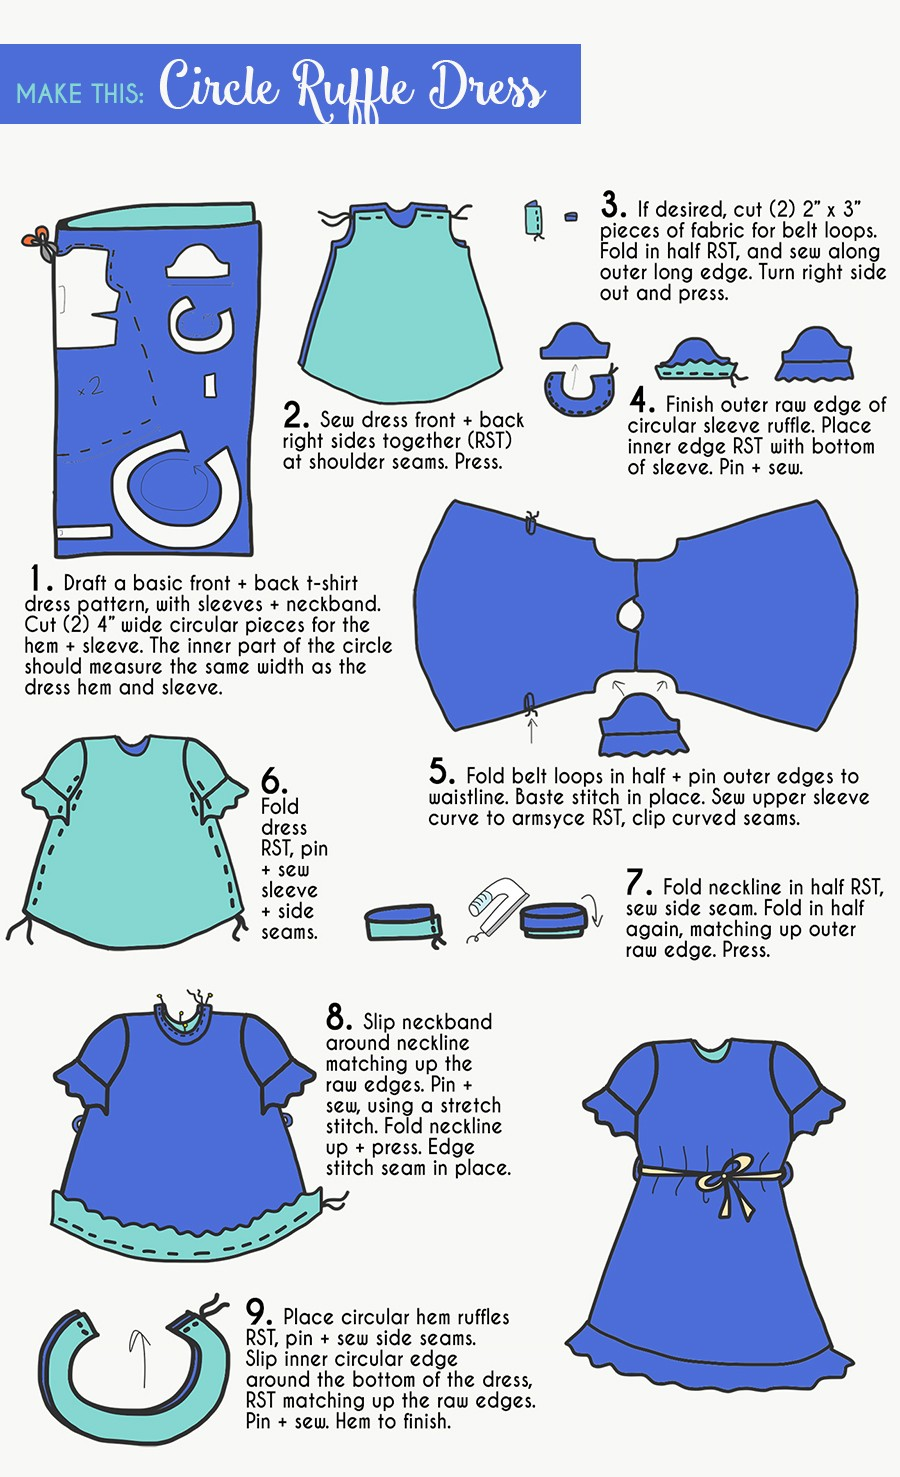 how to sew a circle ruffle dress